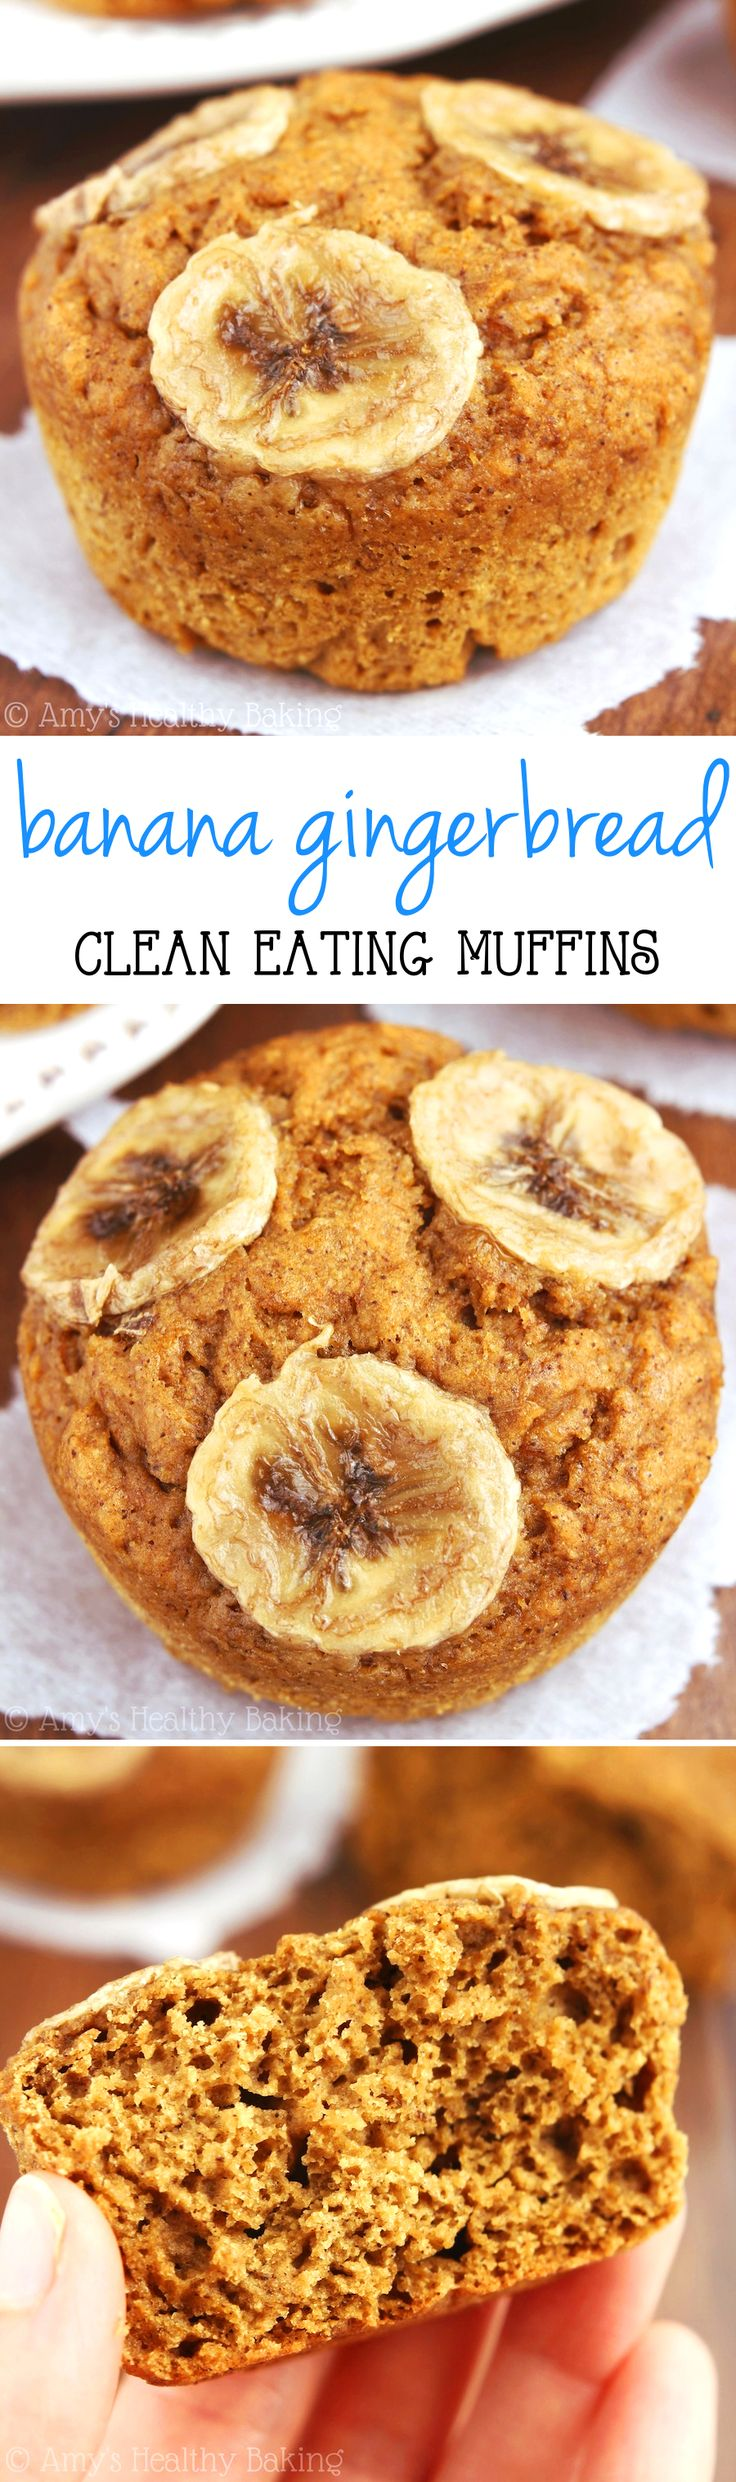 These clean-eating muffins practically taste like cupcakes for breakfast! They're super easy to make & have 4g+ of protein!